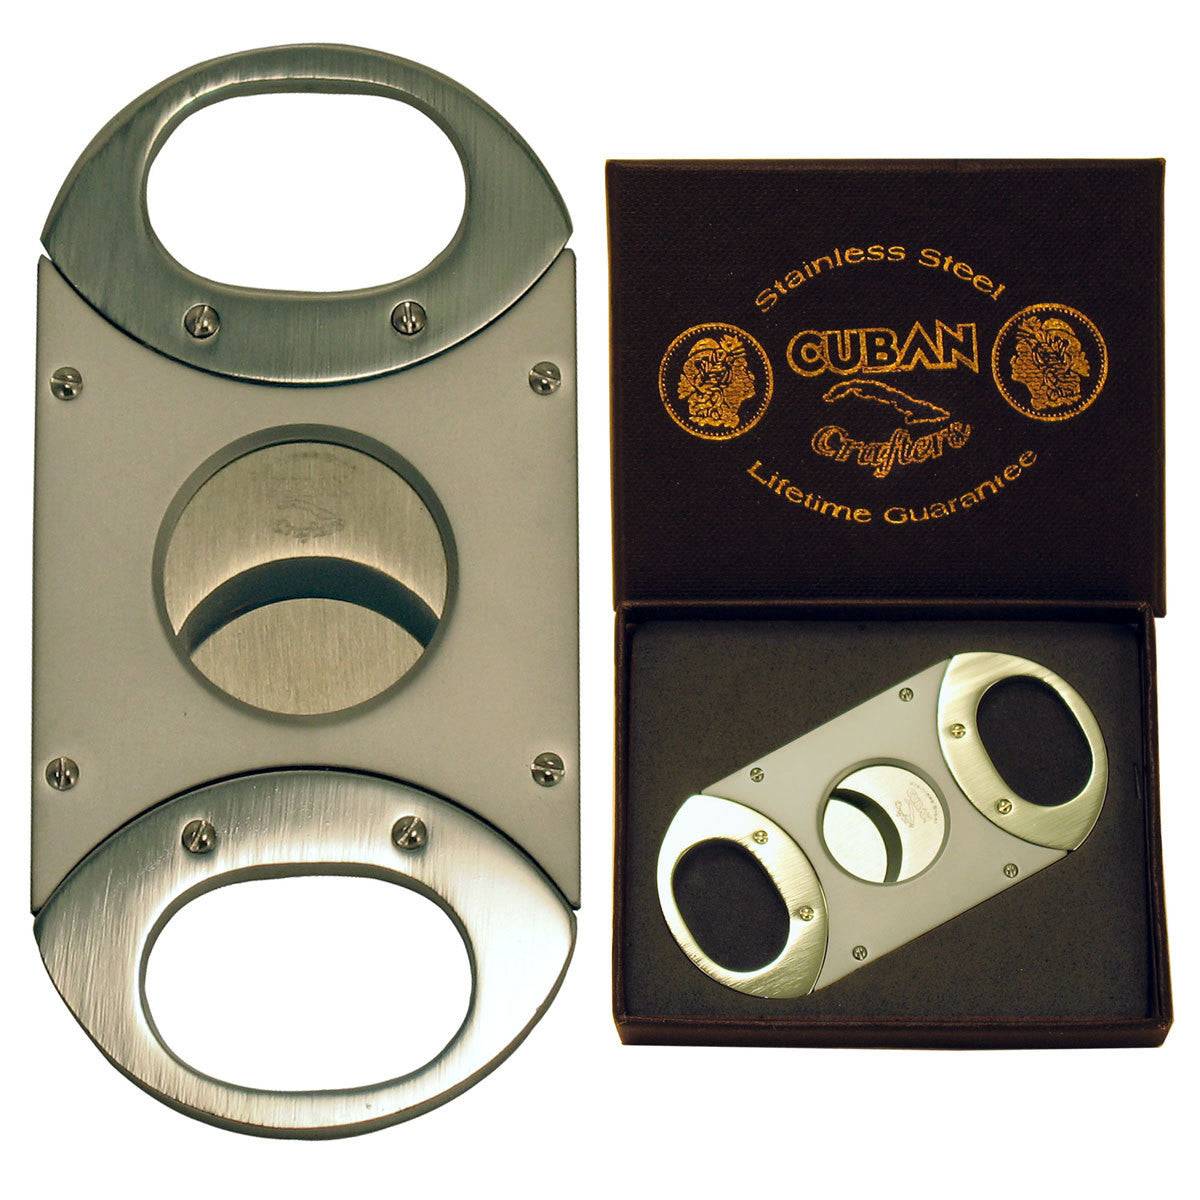 Cuban Crafters Unique Cigar Cutter Copper with Stainless Steel Blades - Cigar boulevard